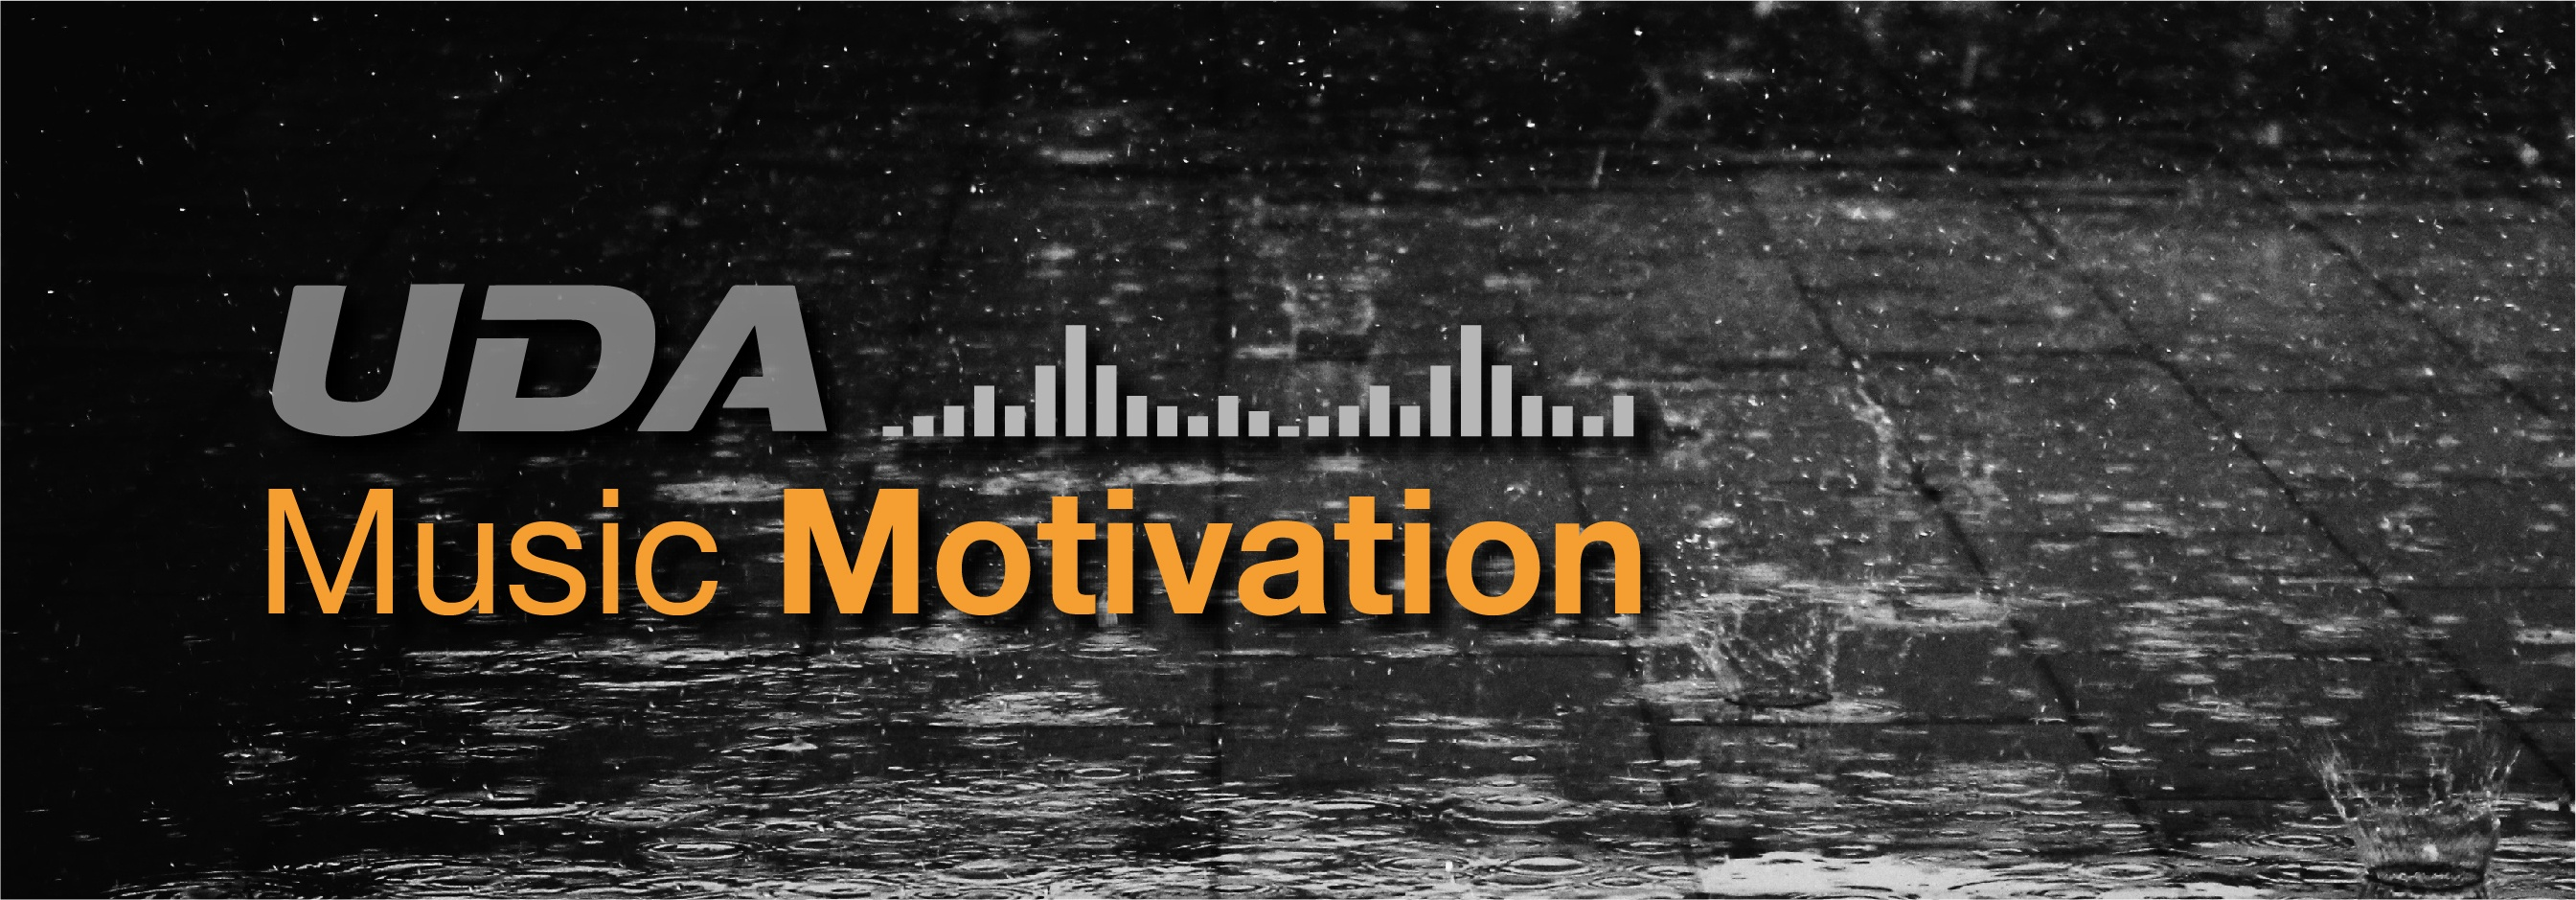 Music Motivation: Stuck In the Office on a Rainy Day